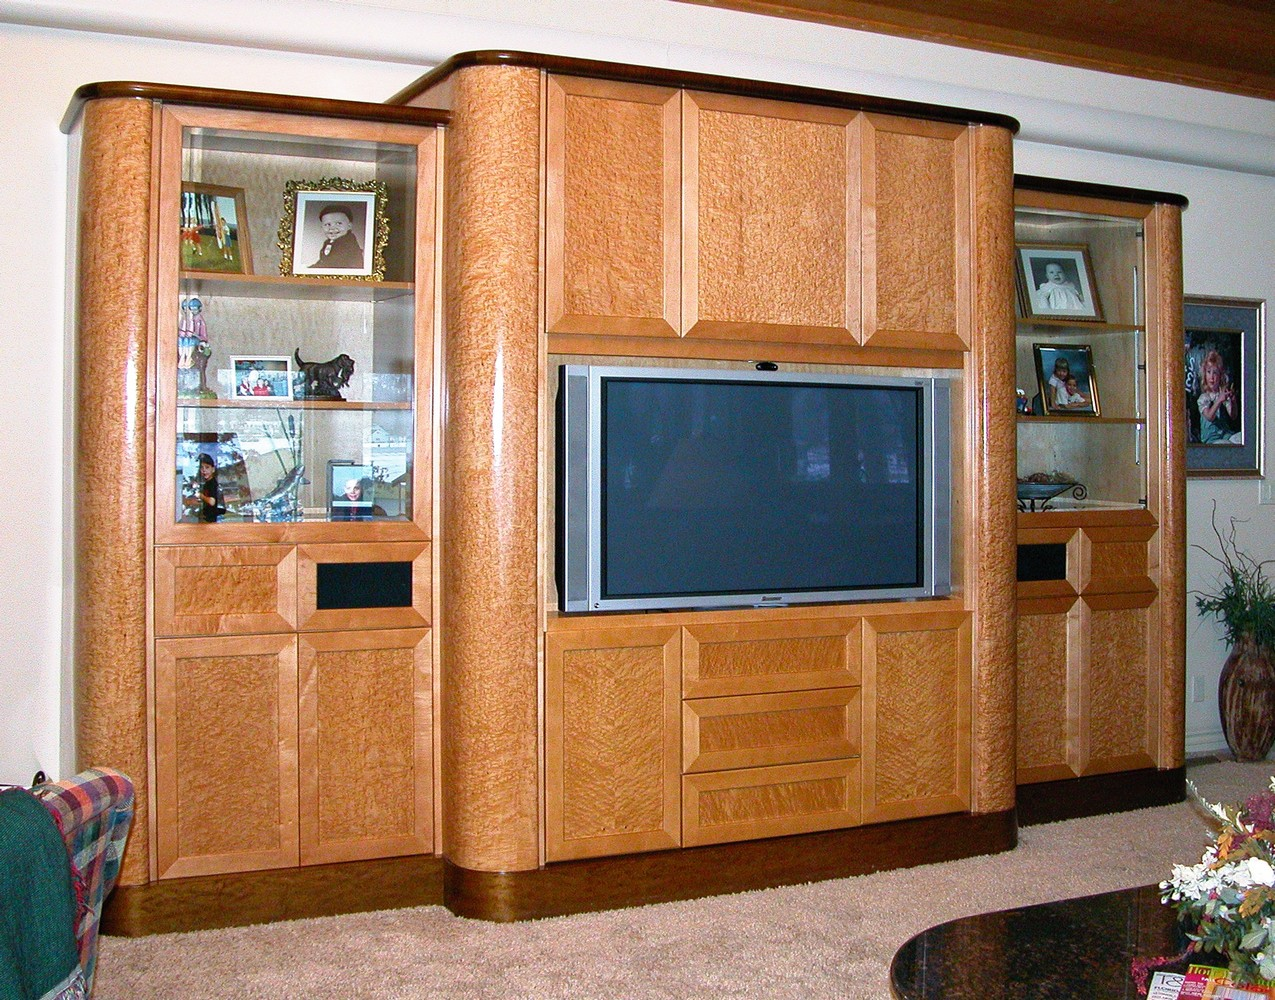 Heavy birds eye maple cabinet with gloss finish home theater   Unique Design Cabinet Co. Home Theater Cabinet Design. Home Design Ideas